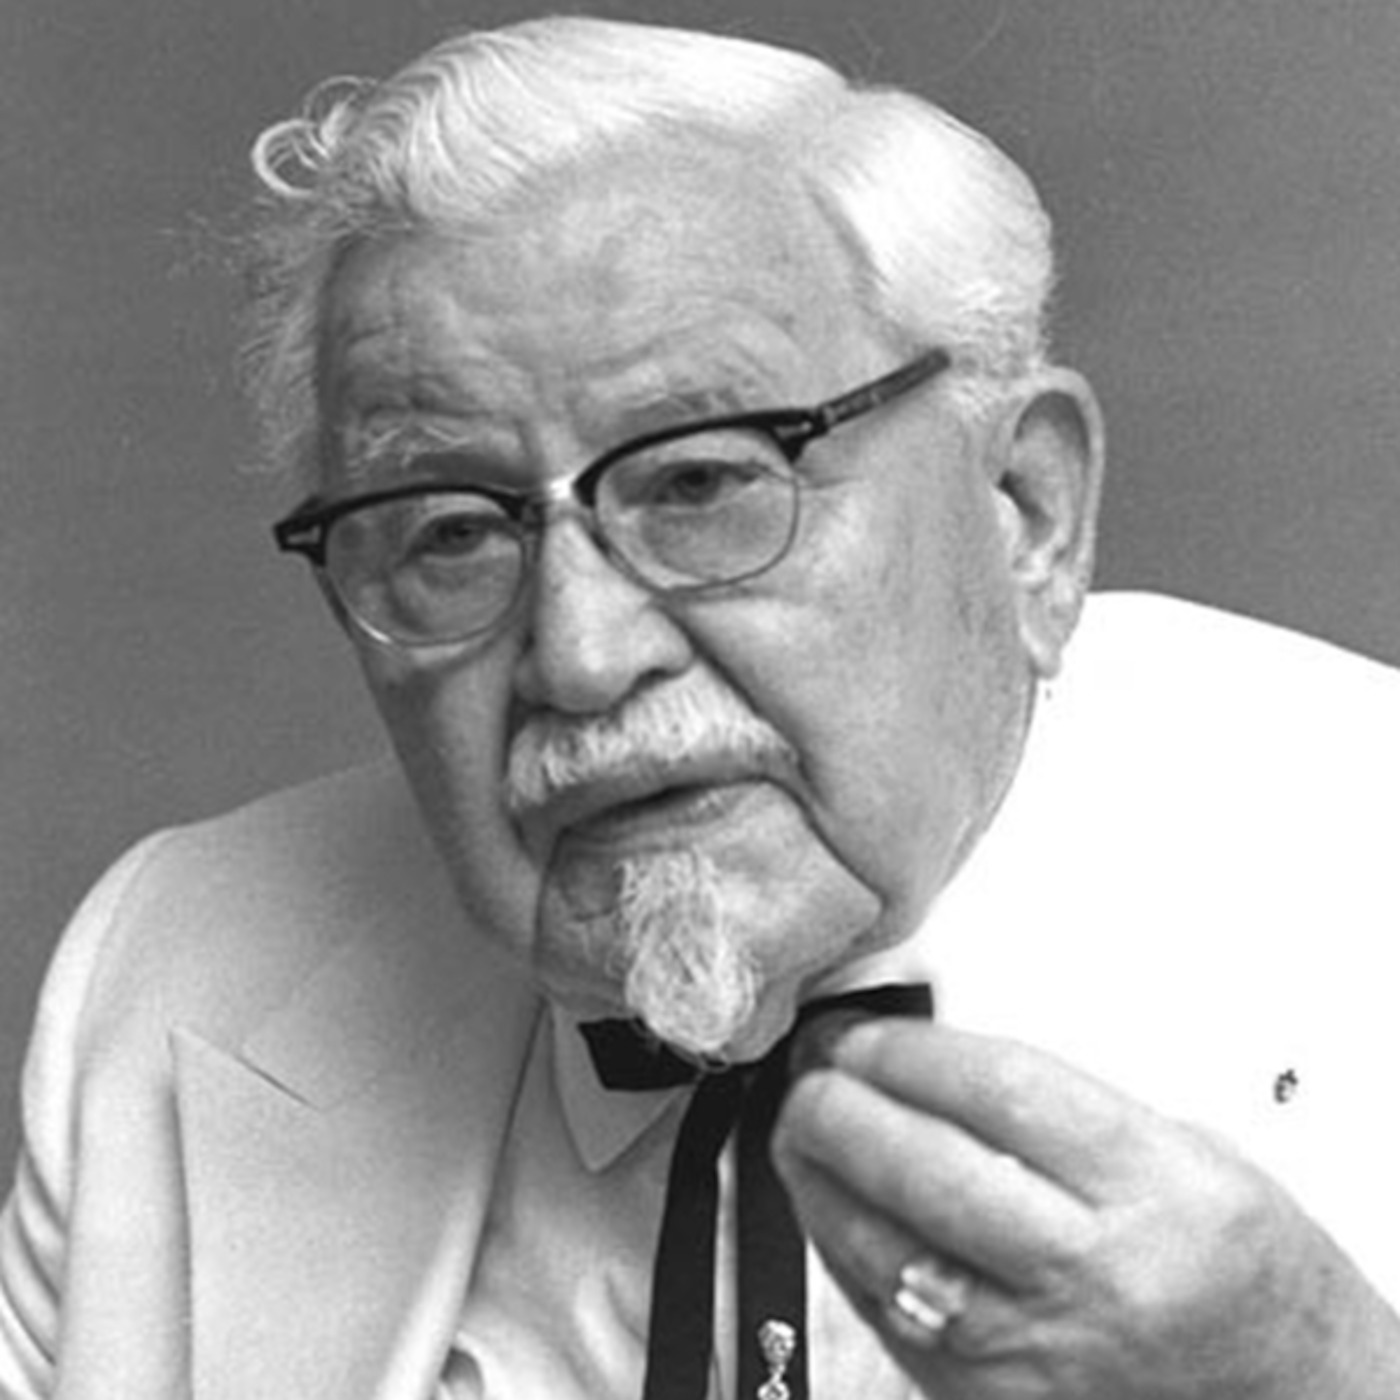 colonel sanders history Colonel harland sanders is the founder of kentucky fried chicken (kfc) and is ronald mcdonald's best known foe the 2 mascots were at war from the very start, and they plan to destroy eachother.